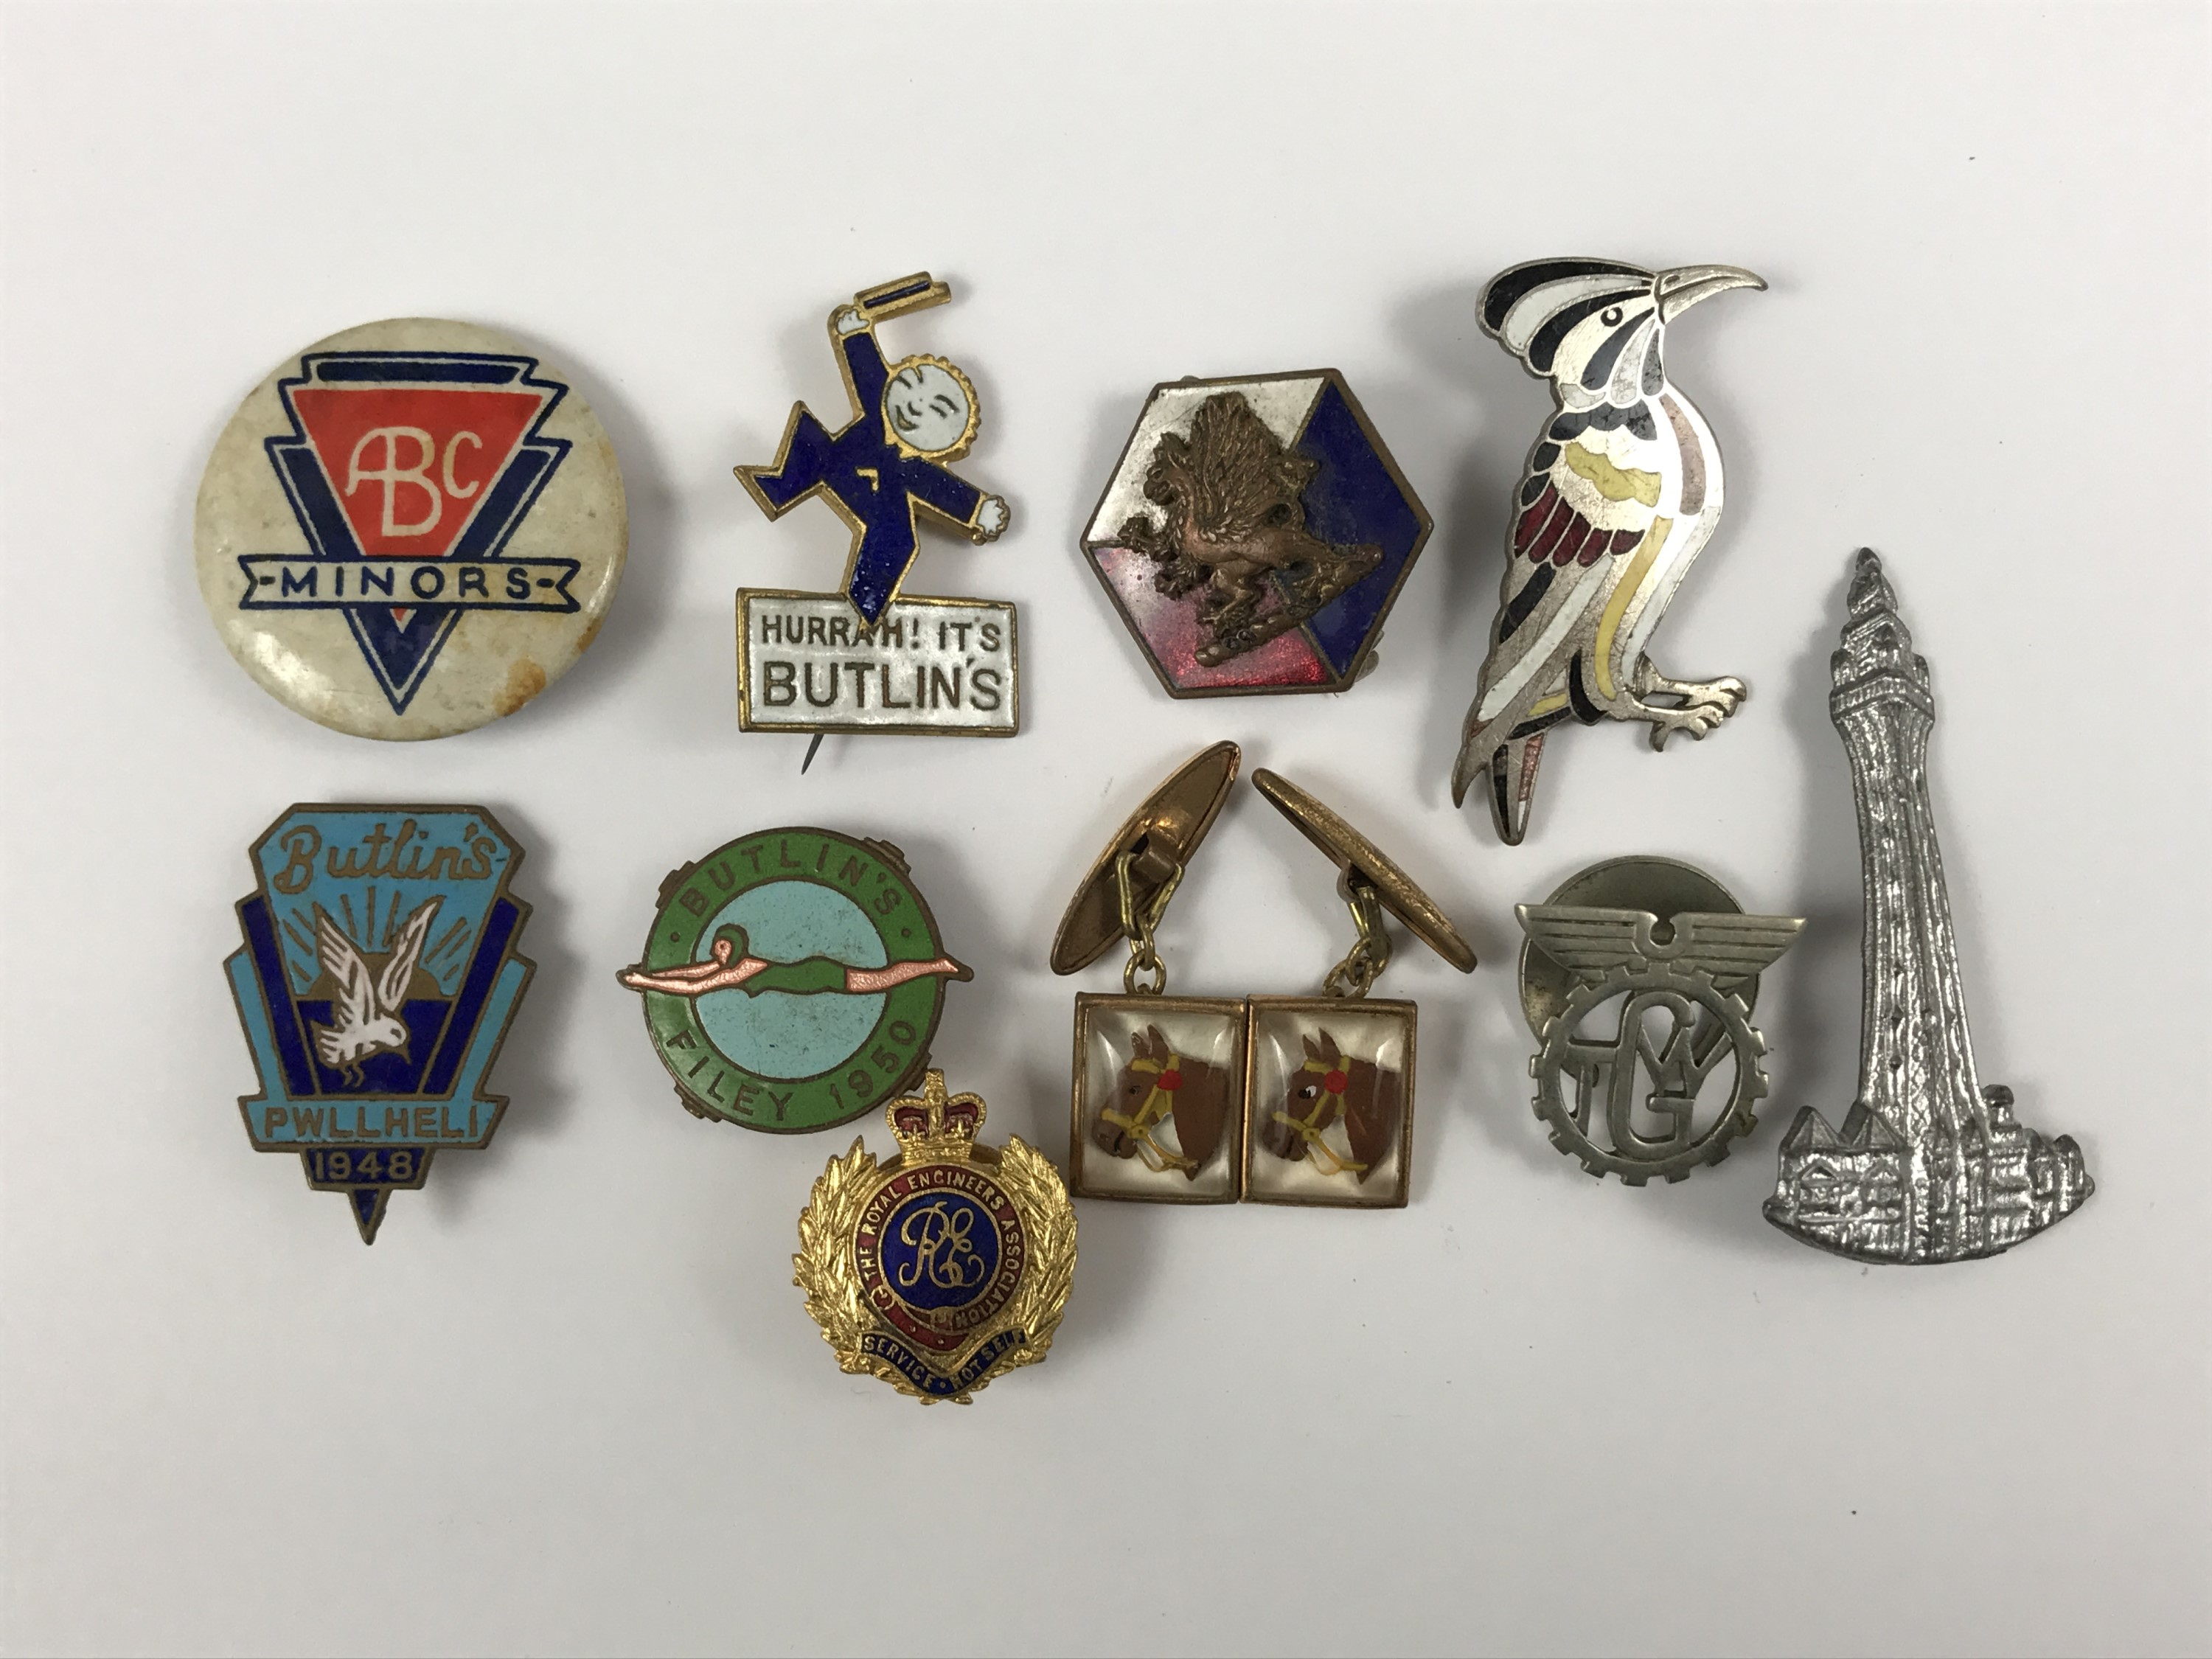 Lot 33 - A number of vintage button / lapel badges etc including Butlin's holiday camp and a Blackpool